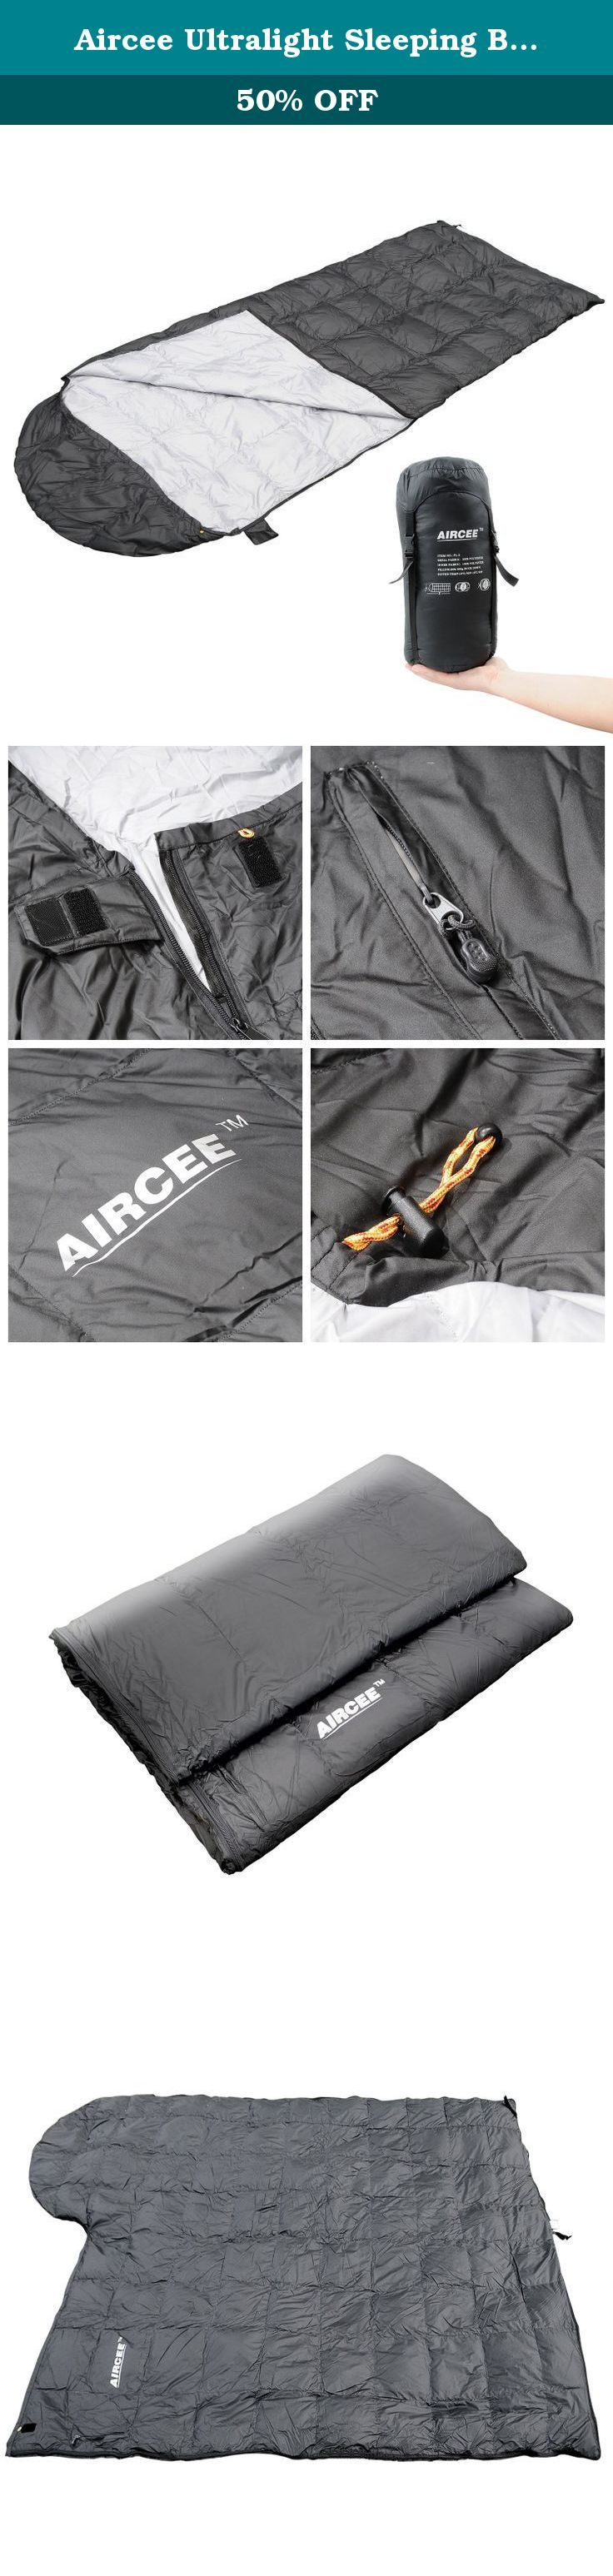 Aircee Ultralight Sleeping Bag with Compression Sack, 50-65 Degree, Cool Weather, 3 Season Lightweight Backpacking Sleep Sack for Camping, Hiking (Black). Aircee (TM) 50F Portable Ultra-Light Ultra-compact Down Filled Traveling Camping Backpacking Hooded Sleeping Bag (Black).